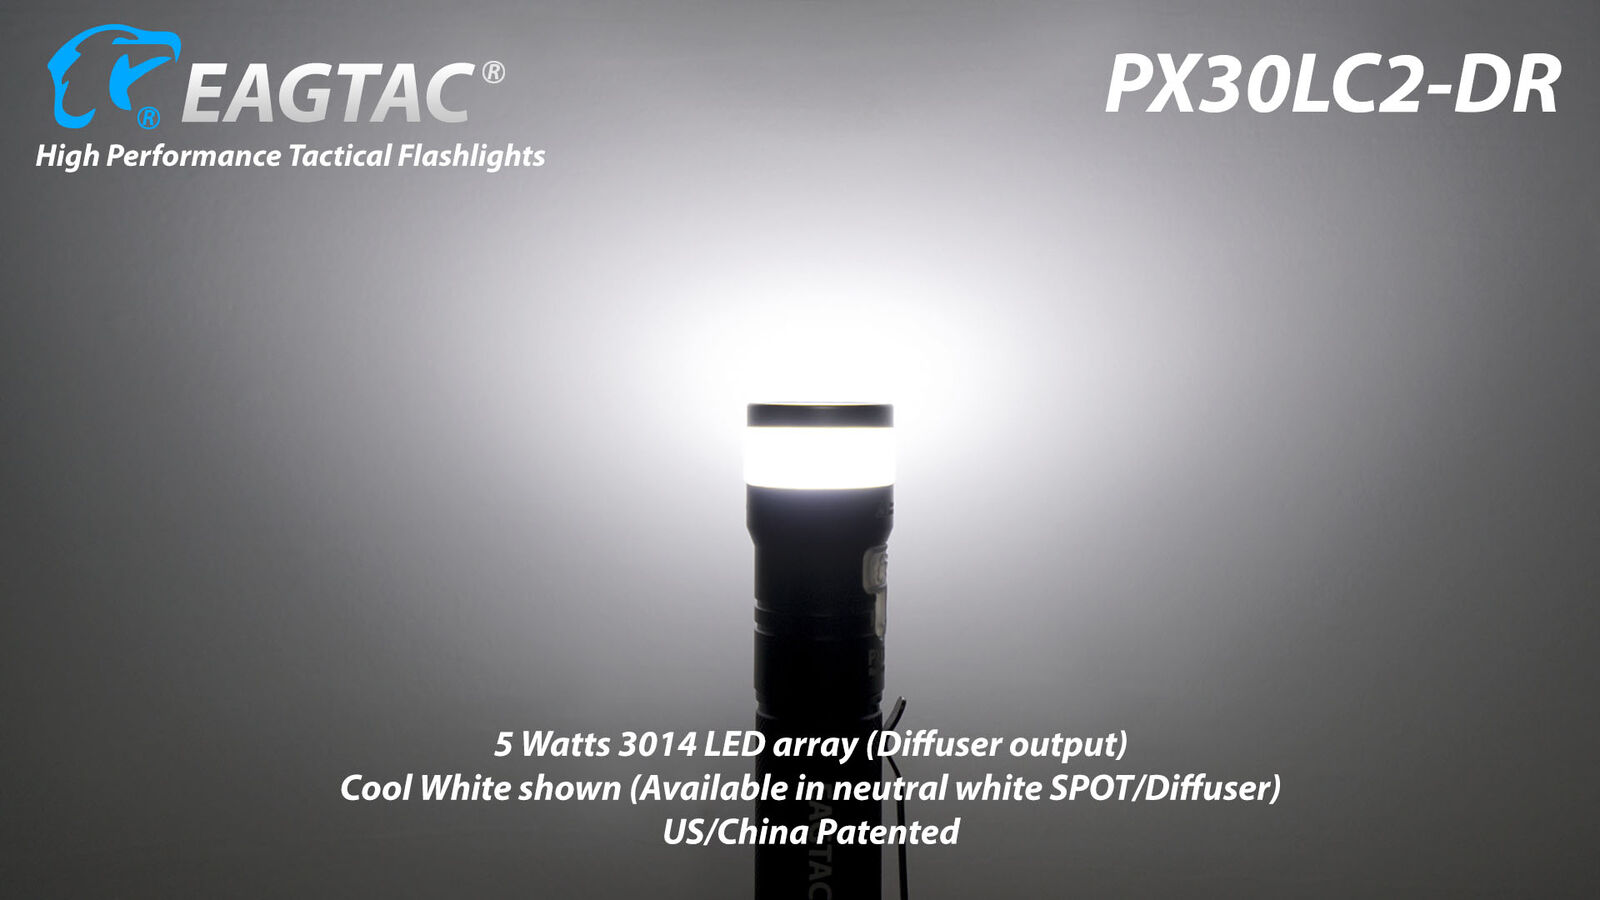 Torcia Eagletac Eagtac PX30LC2-DR NW 1160 lumens Ricaricabile Neutral